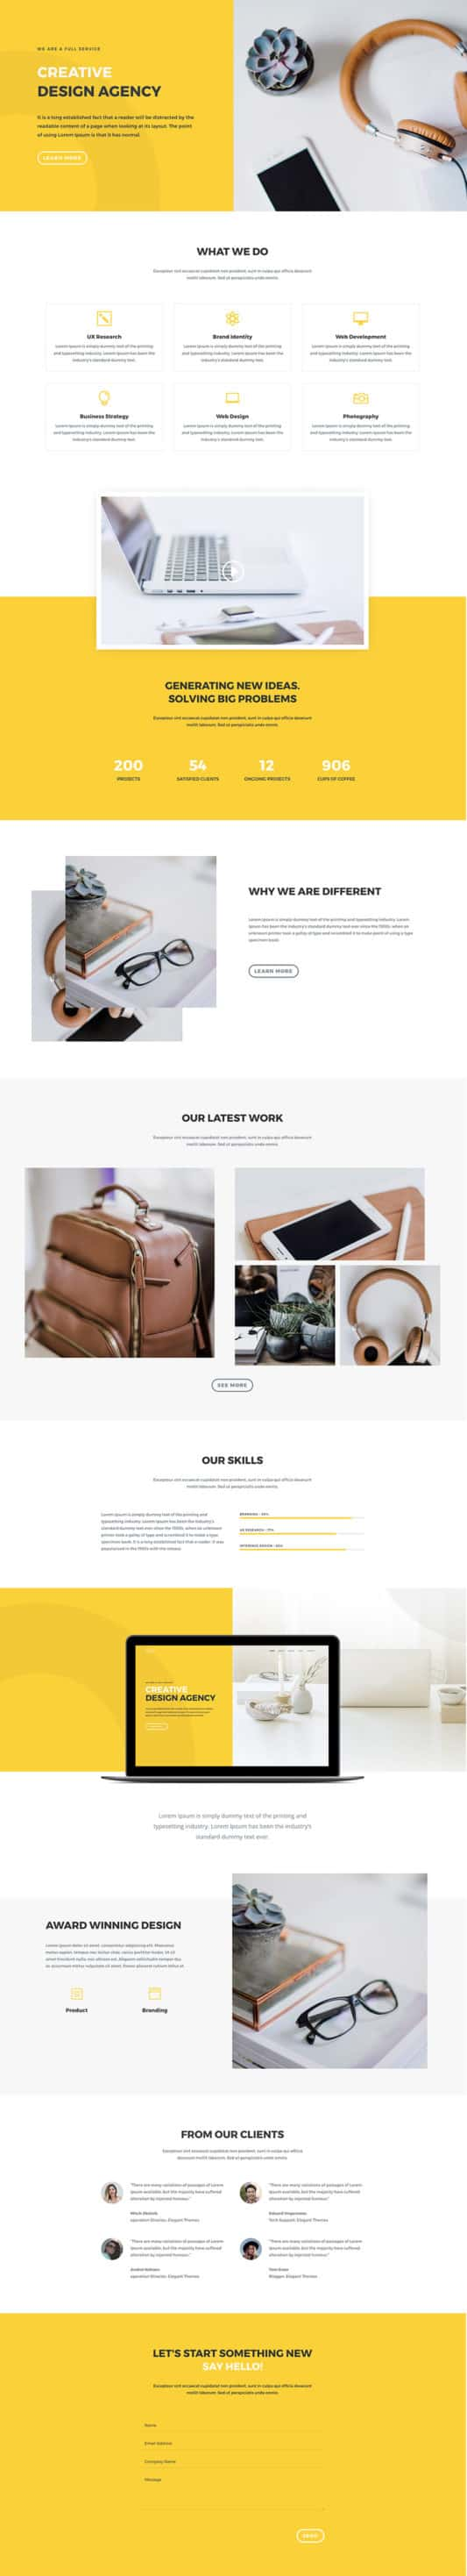 The Design Agency Page Style: Homepage Design 1